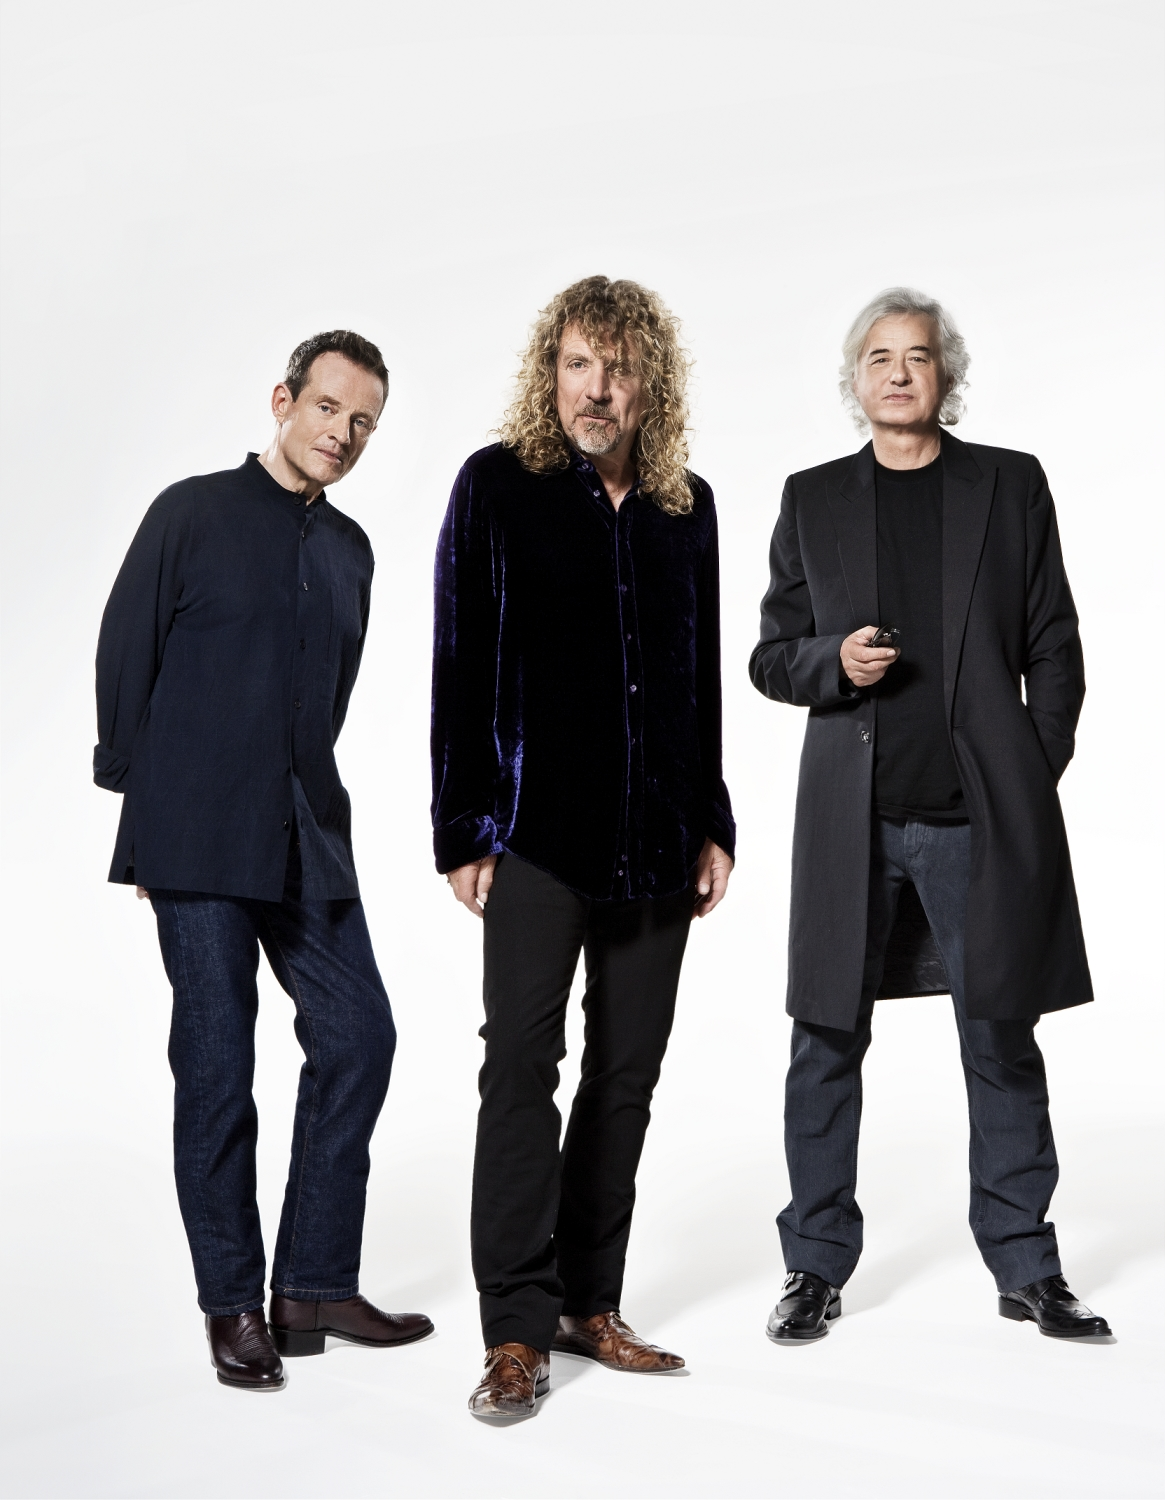 Led Zeppelin, accuse di plagio per  Stairway to heaven